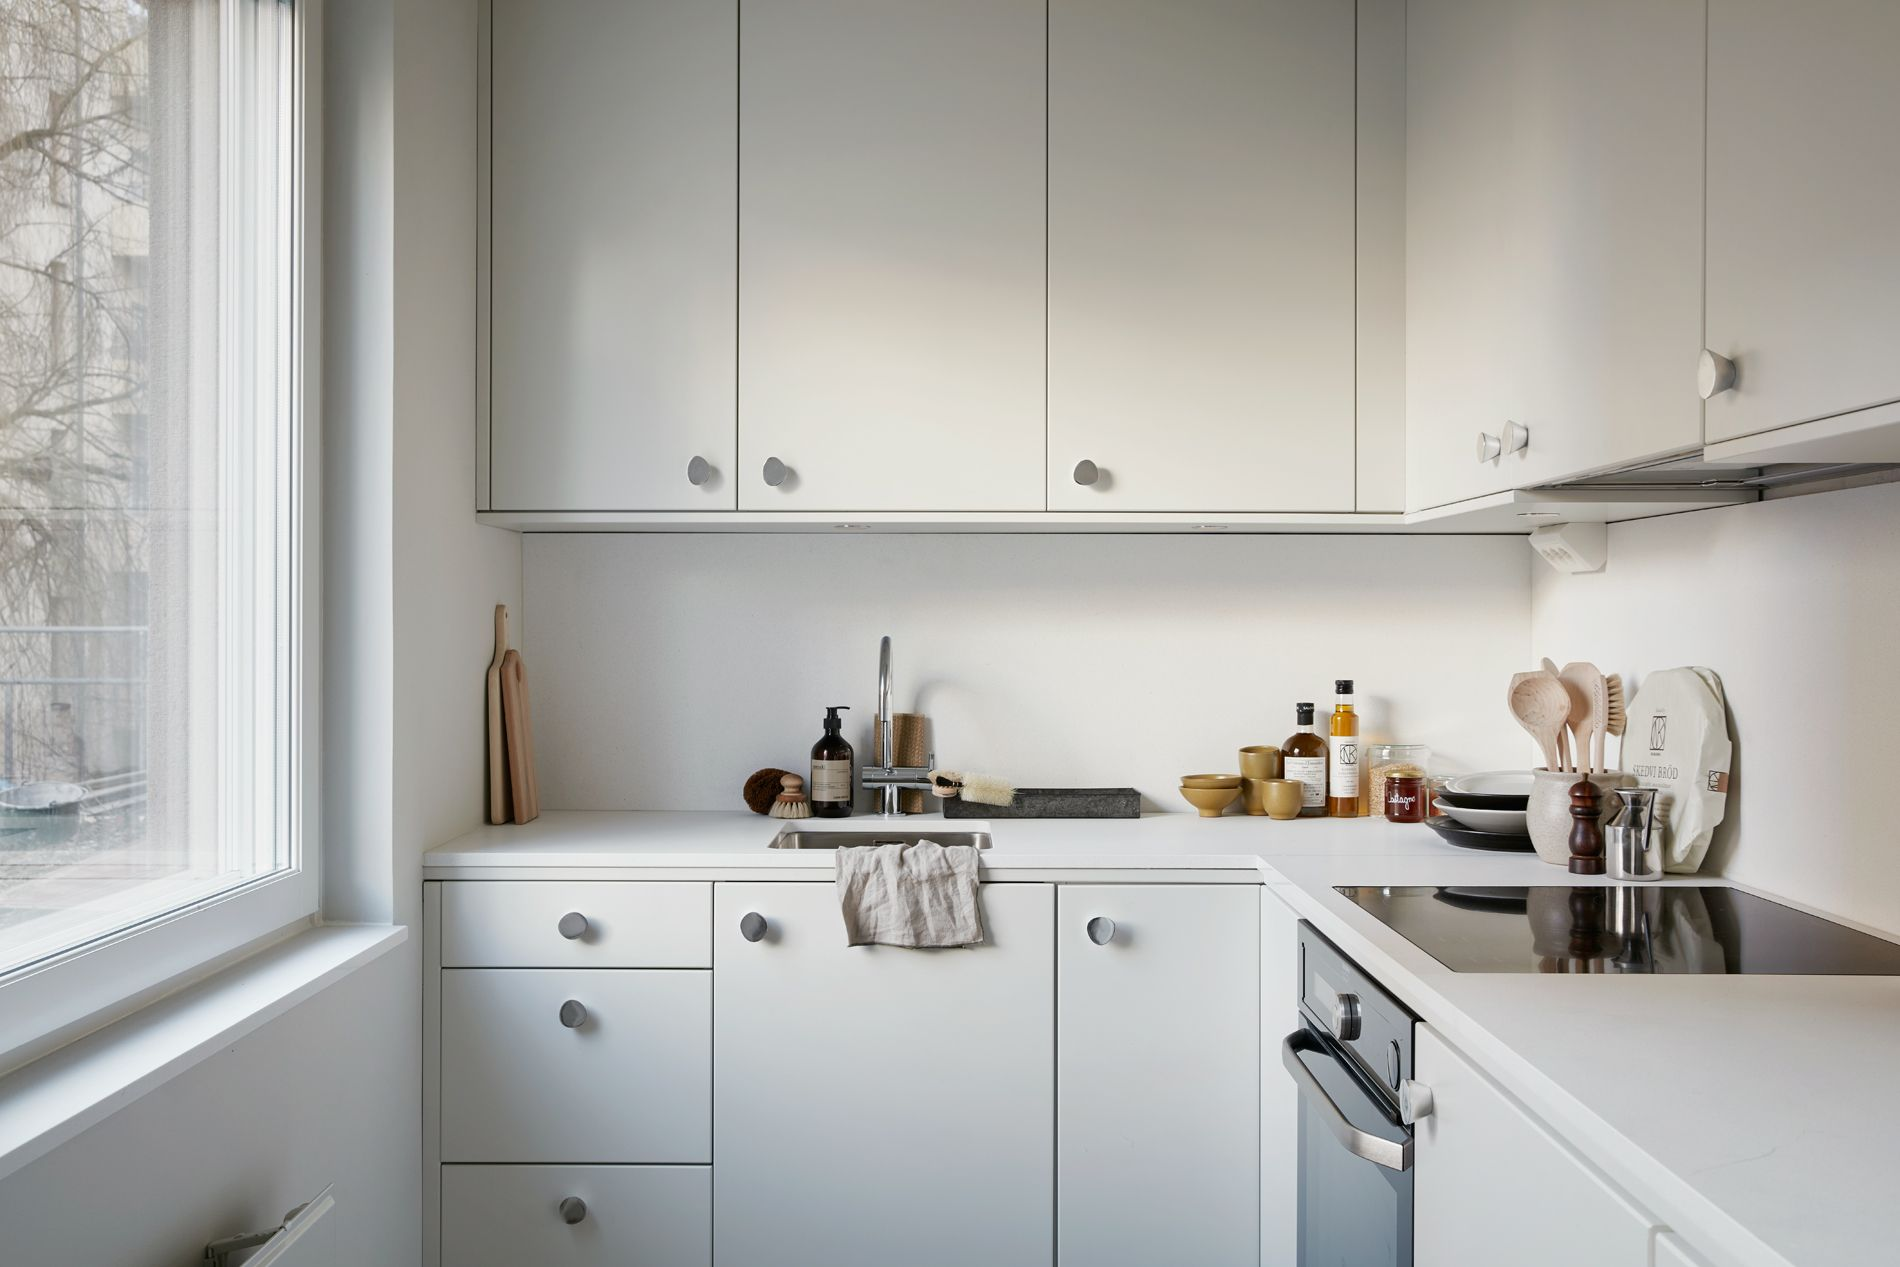 Small allwhite kitchen K i t c h e n s Pinterest